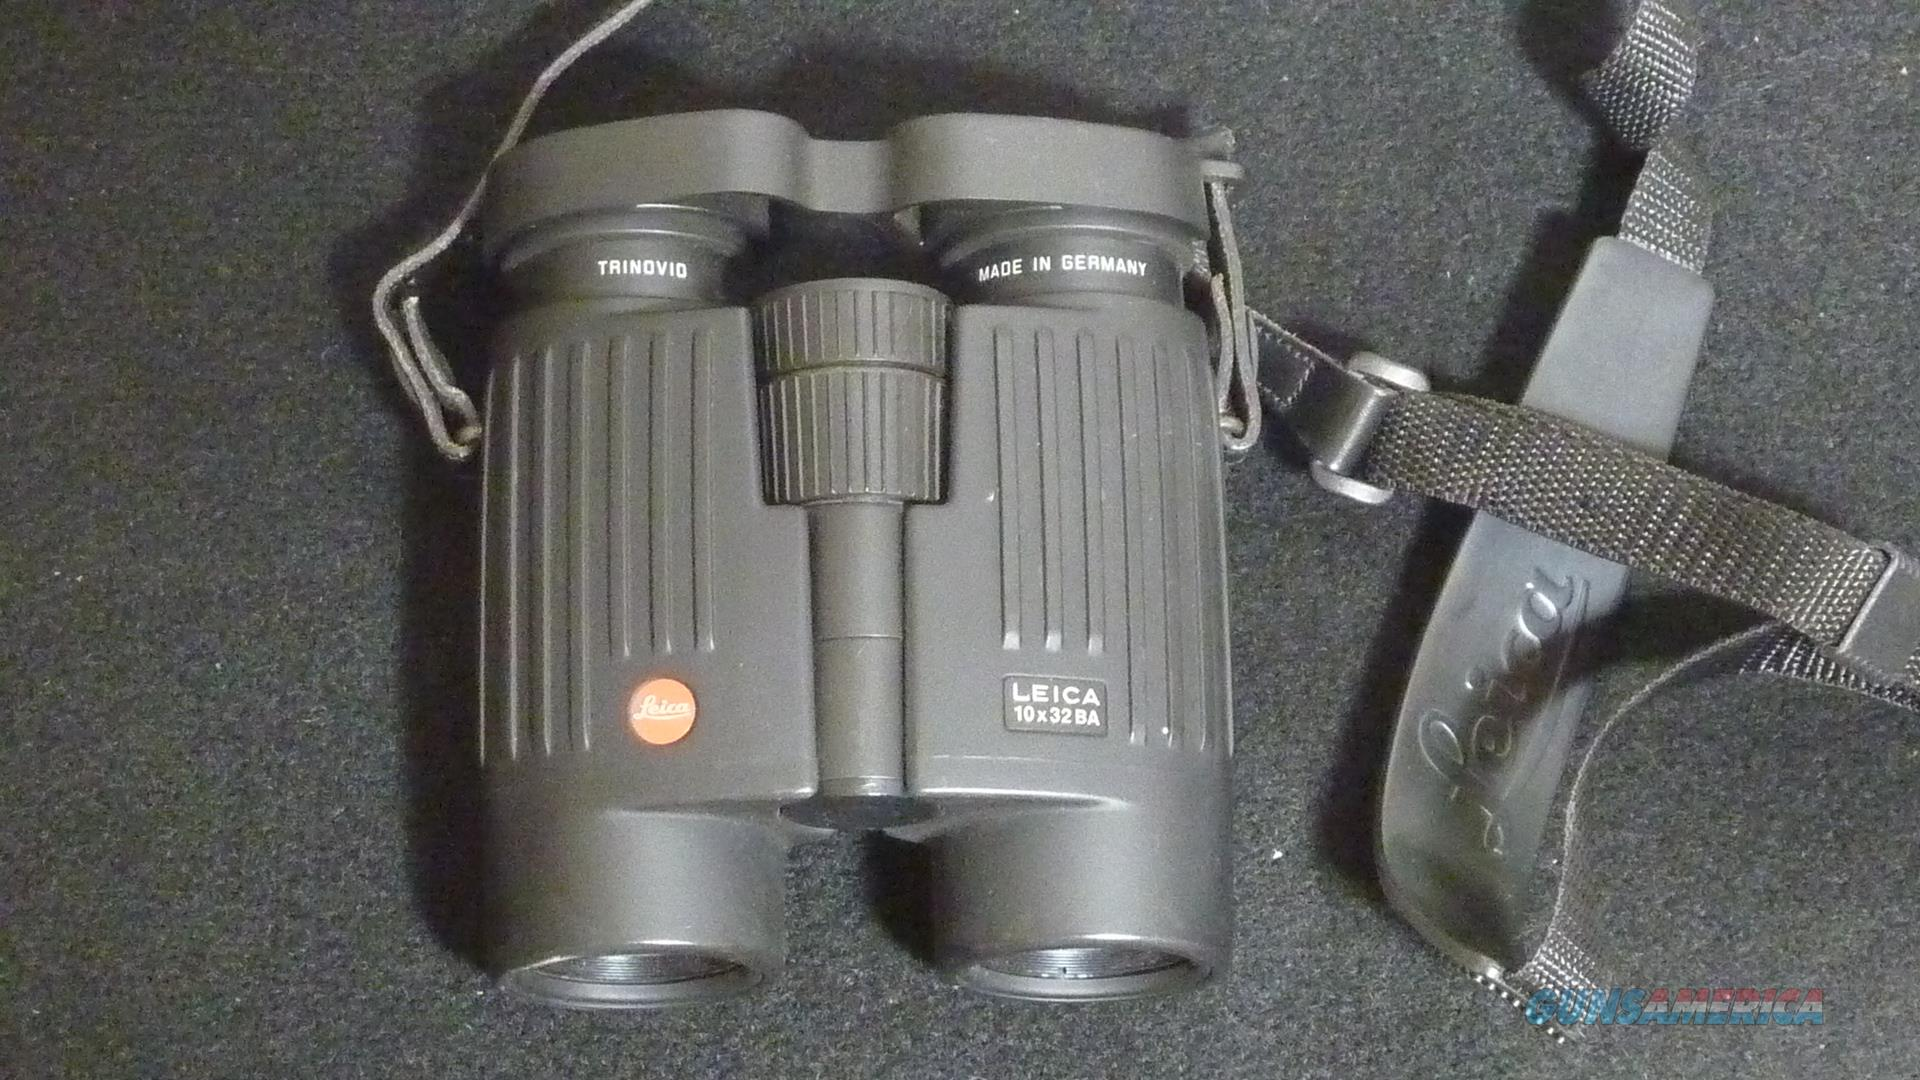 Leica 10x32 BA binoculars  Non-Guns > Scopes/Mounts/Rings & Optics > Non-Scope Optics > Binoculars